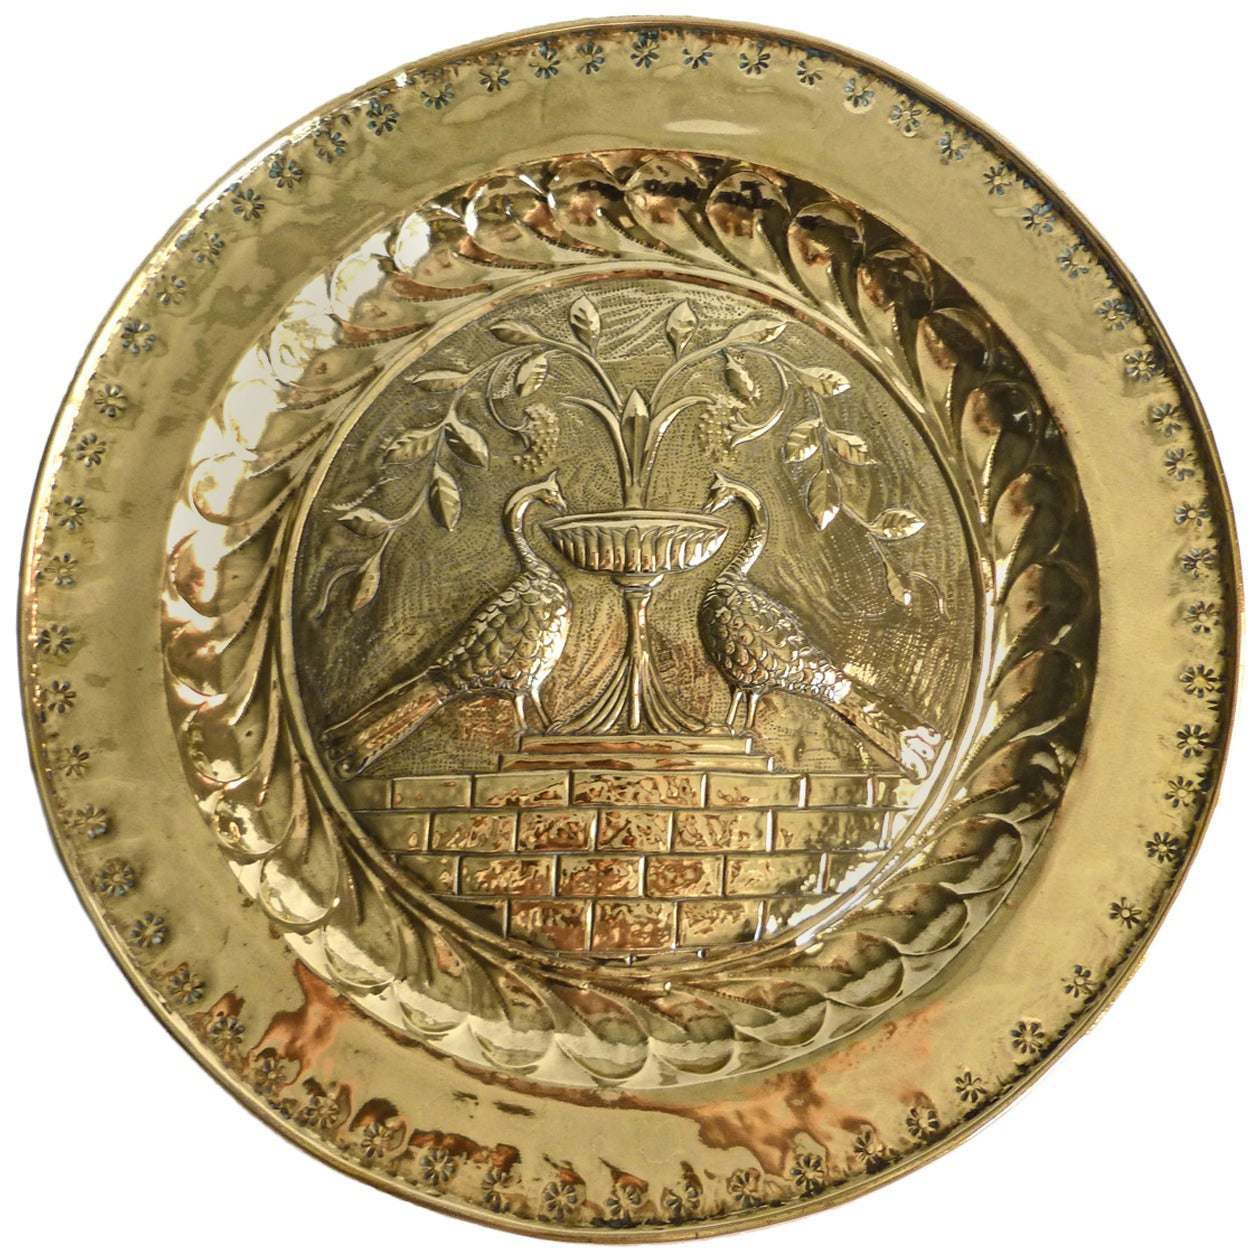 Extremely Rare Large Size German Brass Alms Dish, circa 1500 1